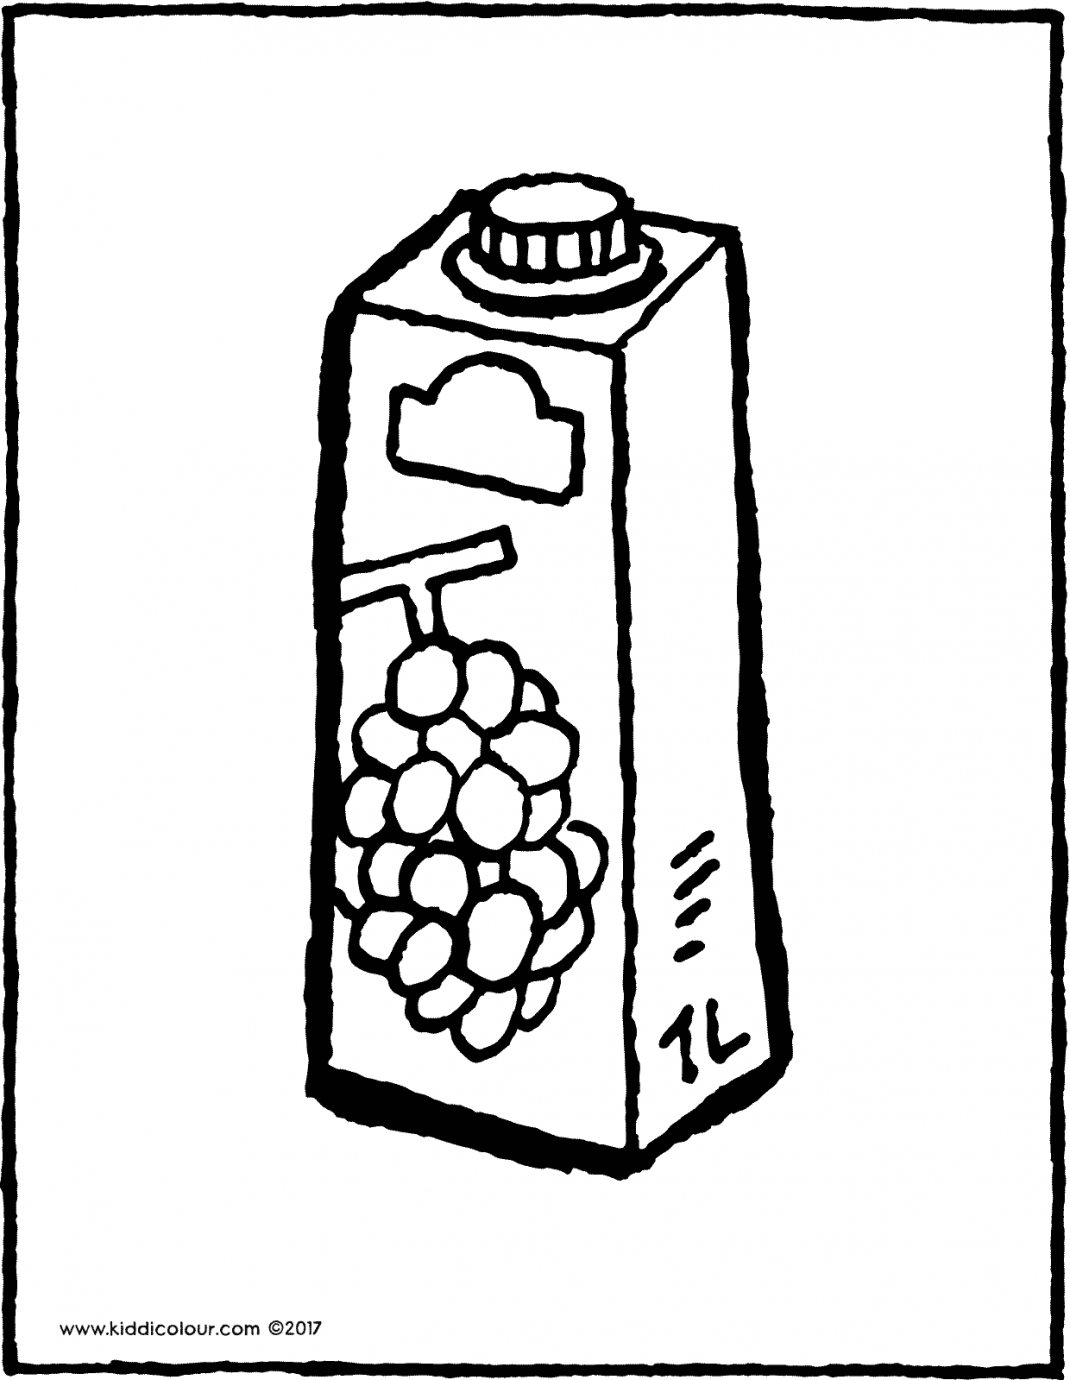 grape juice colouring page drawing picture 01V